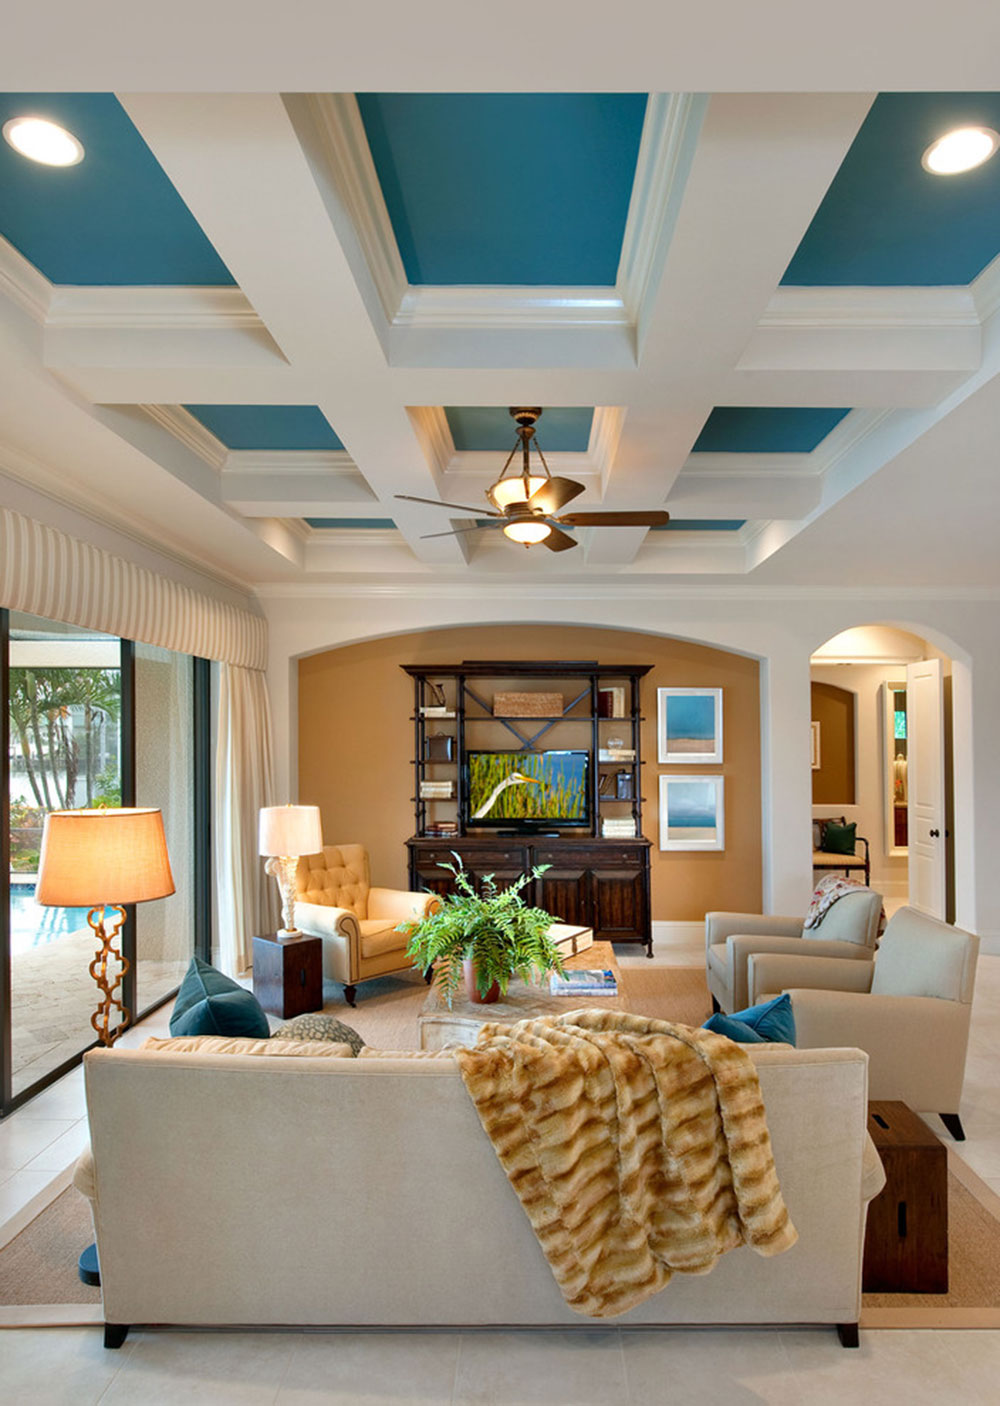 What color should I paint for my ceiling6 What color should I paint for my ceiling?